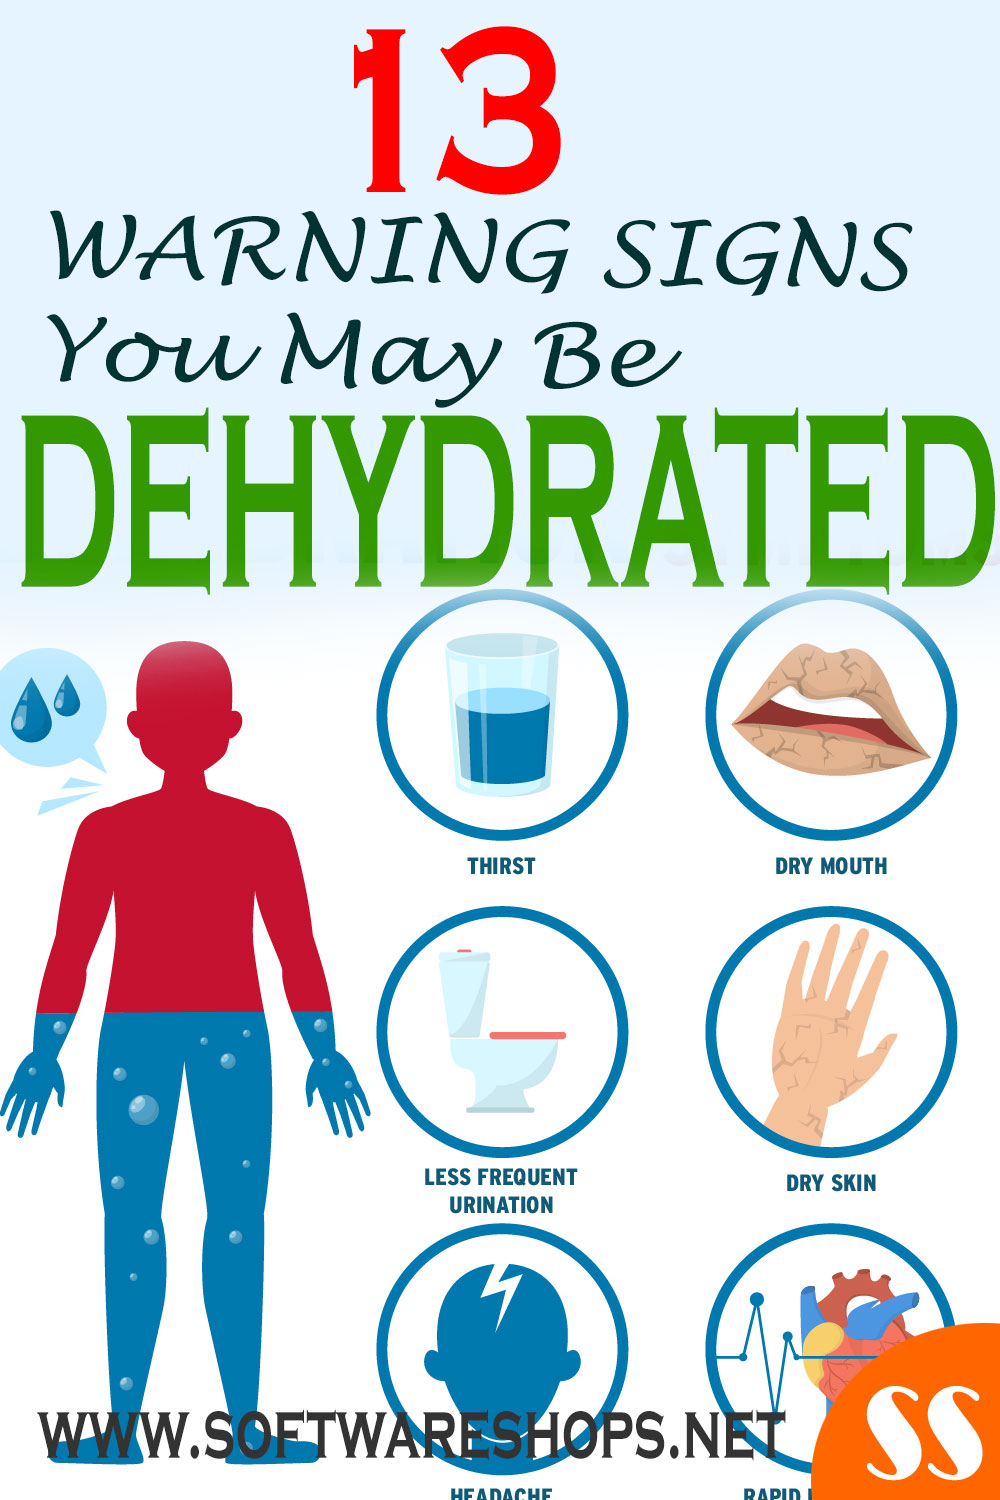 13 warning signs you may be dehydrated